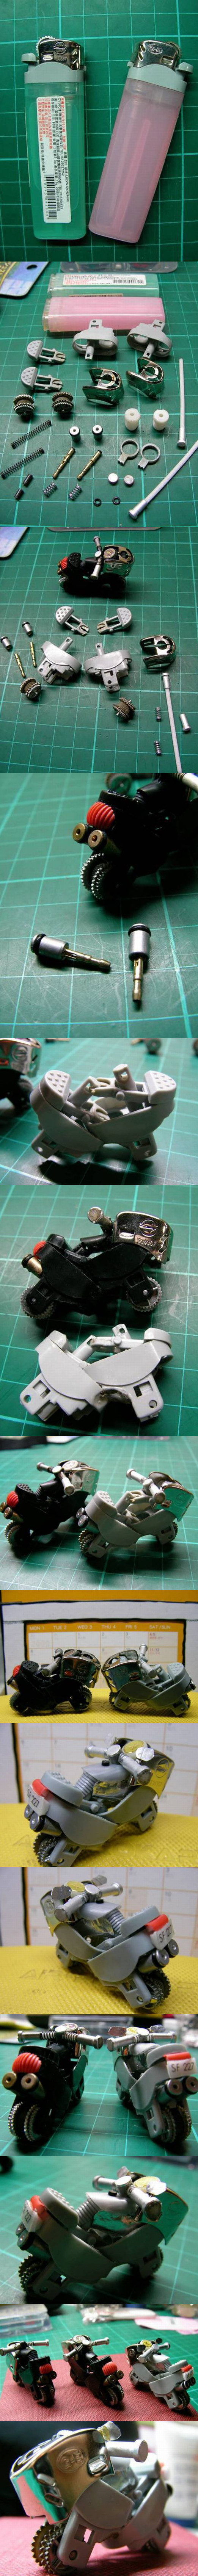 Amazing Transformation from common lighters to Miniature Motorbikes!